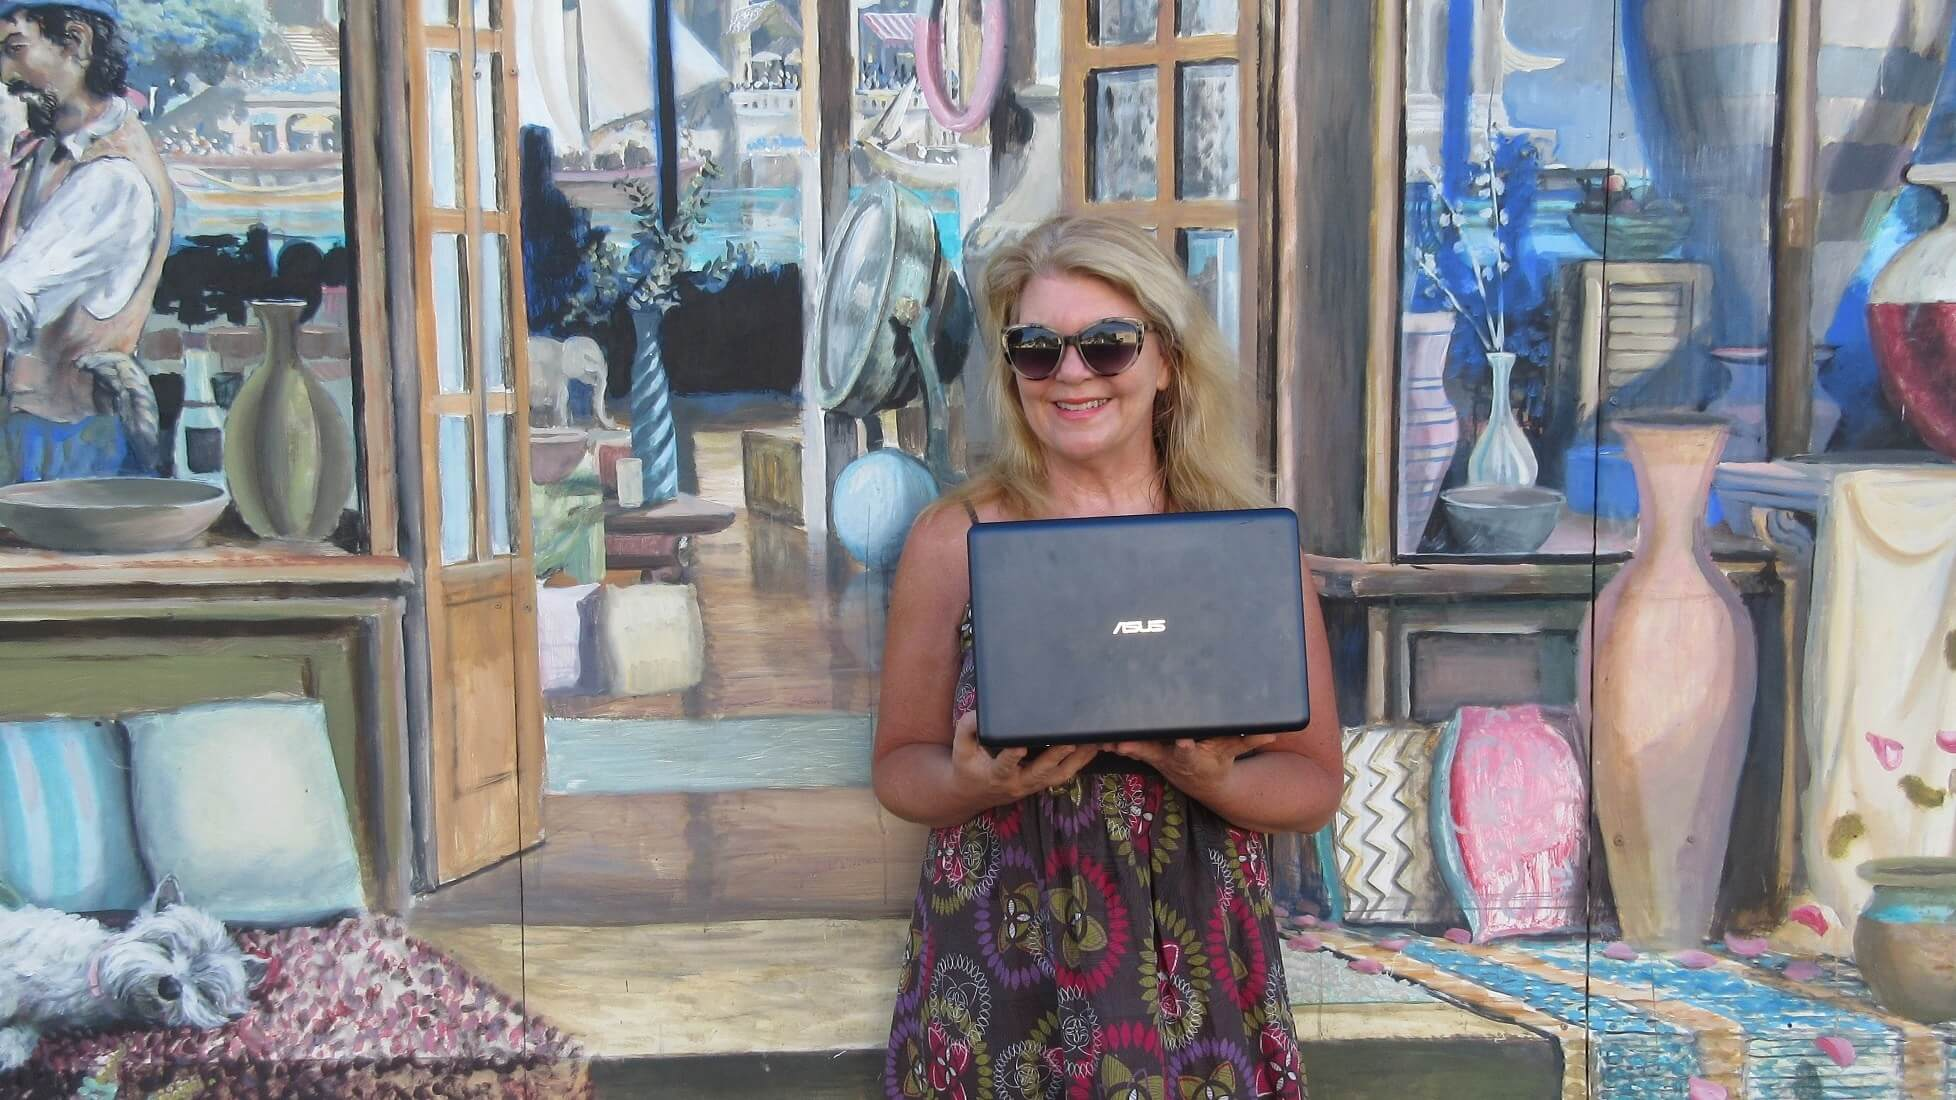 Elaine from Eccentric England - Travel Blogger